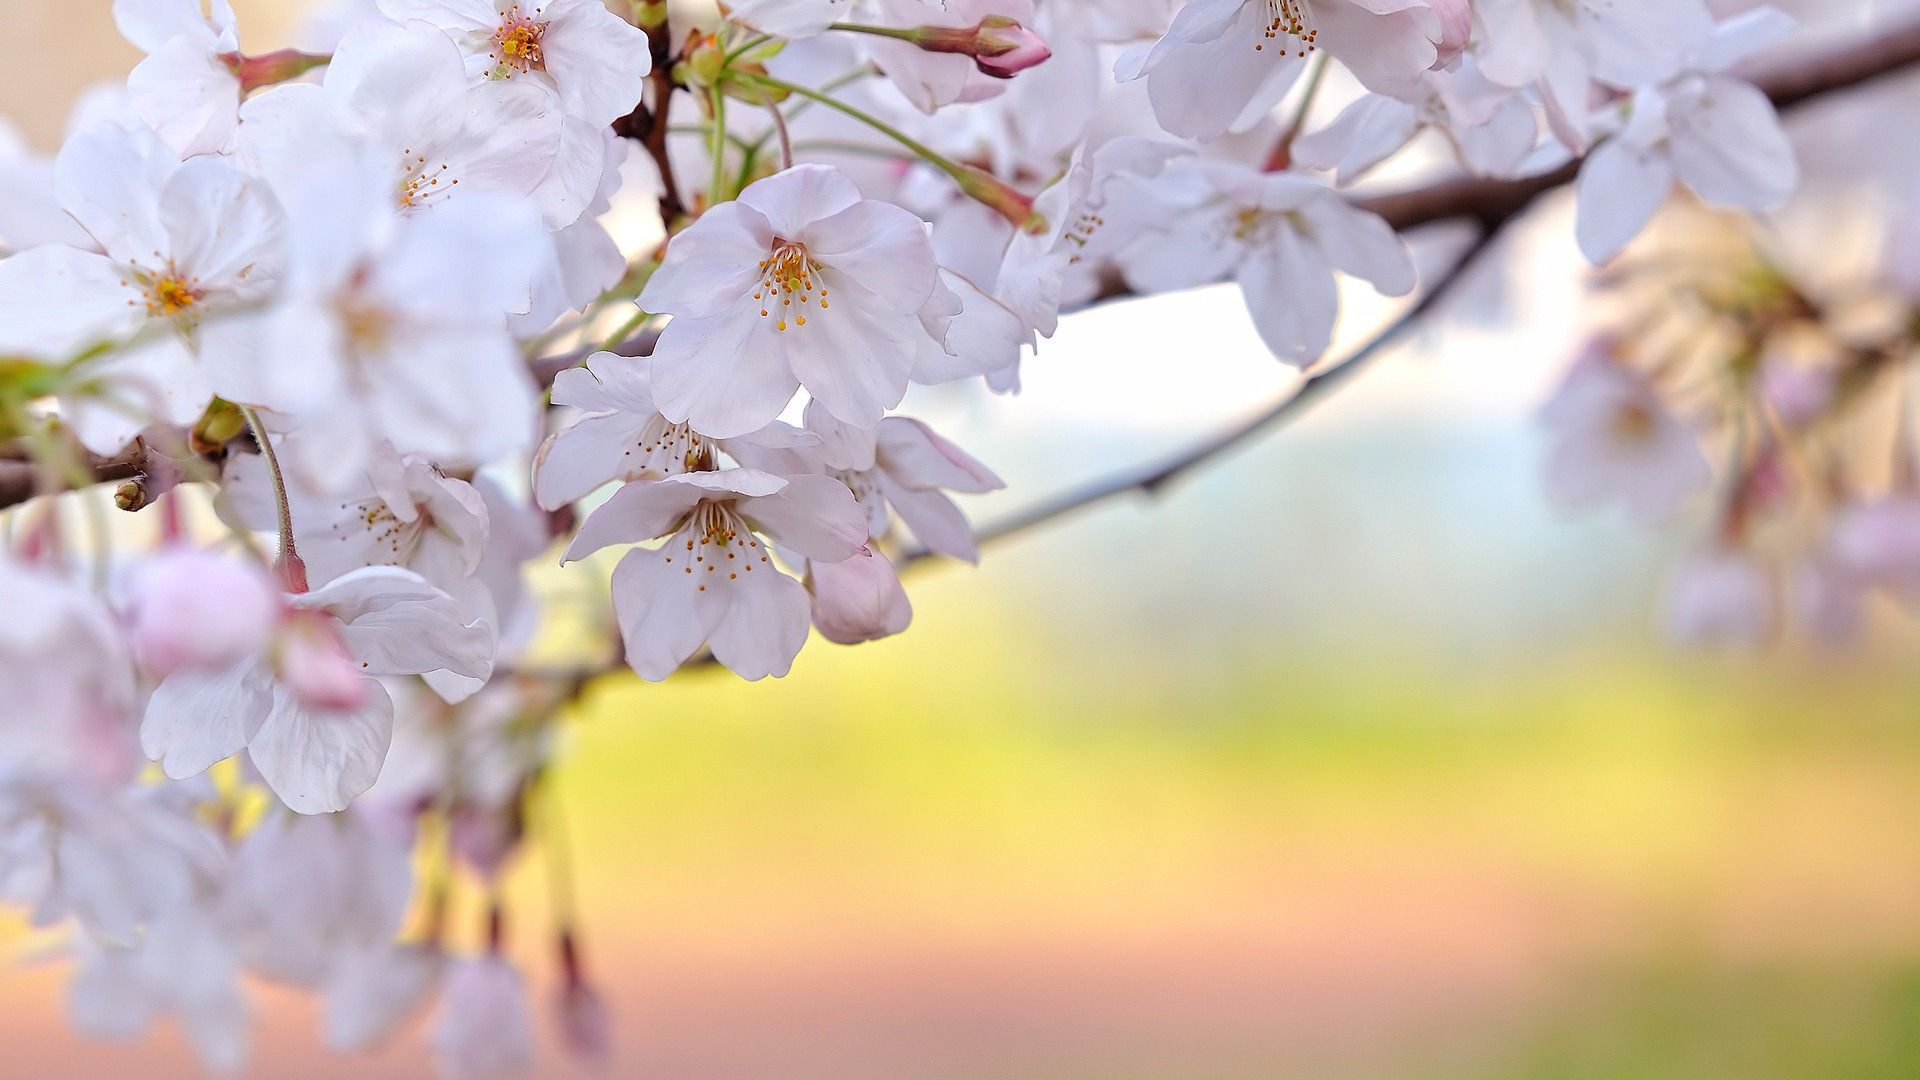 Spring Flowers Wallpapers Hd Wallpapers Pinterest Spring